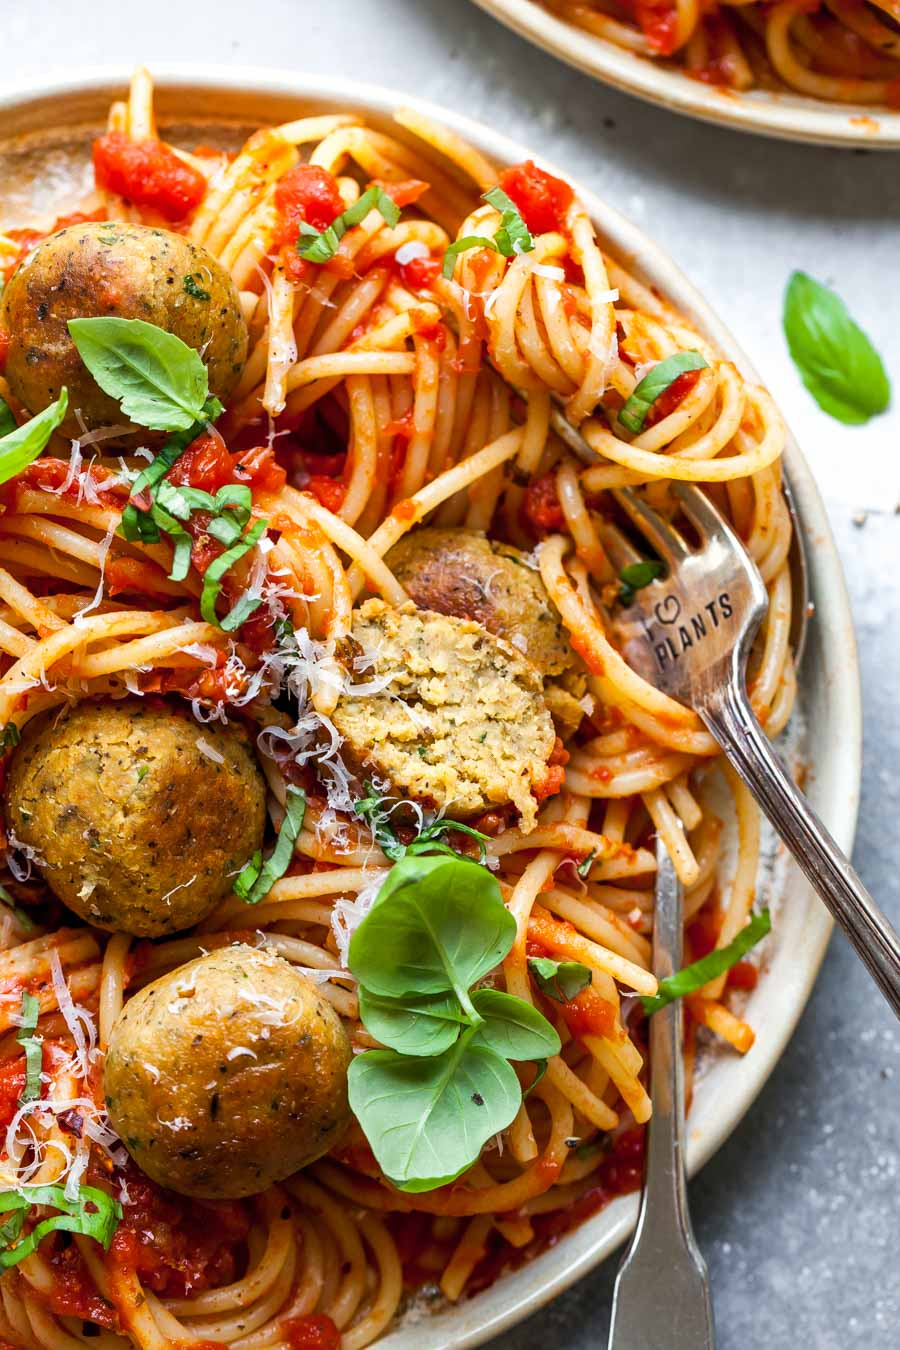 Chickpea meatballs on a plate of spaghetti with a fork